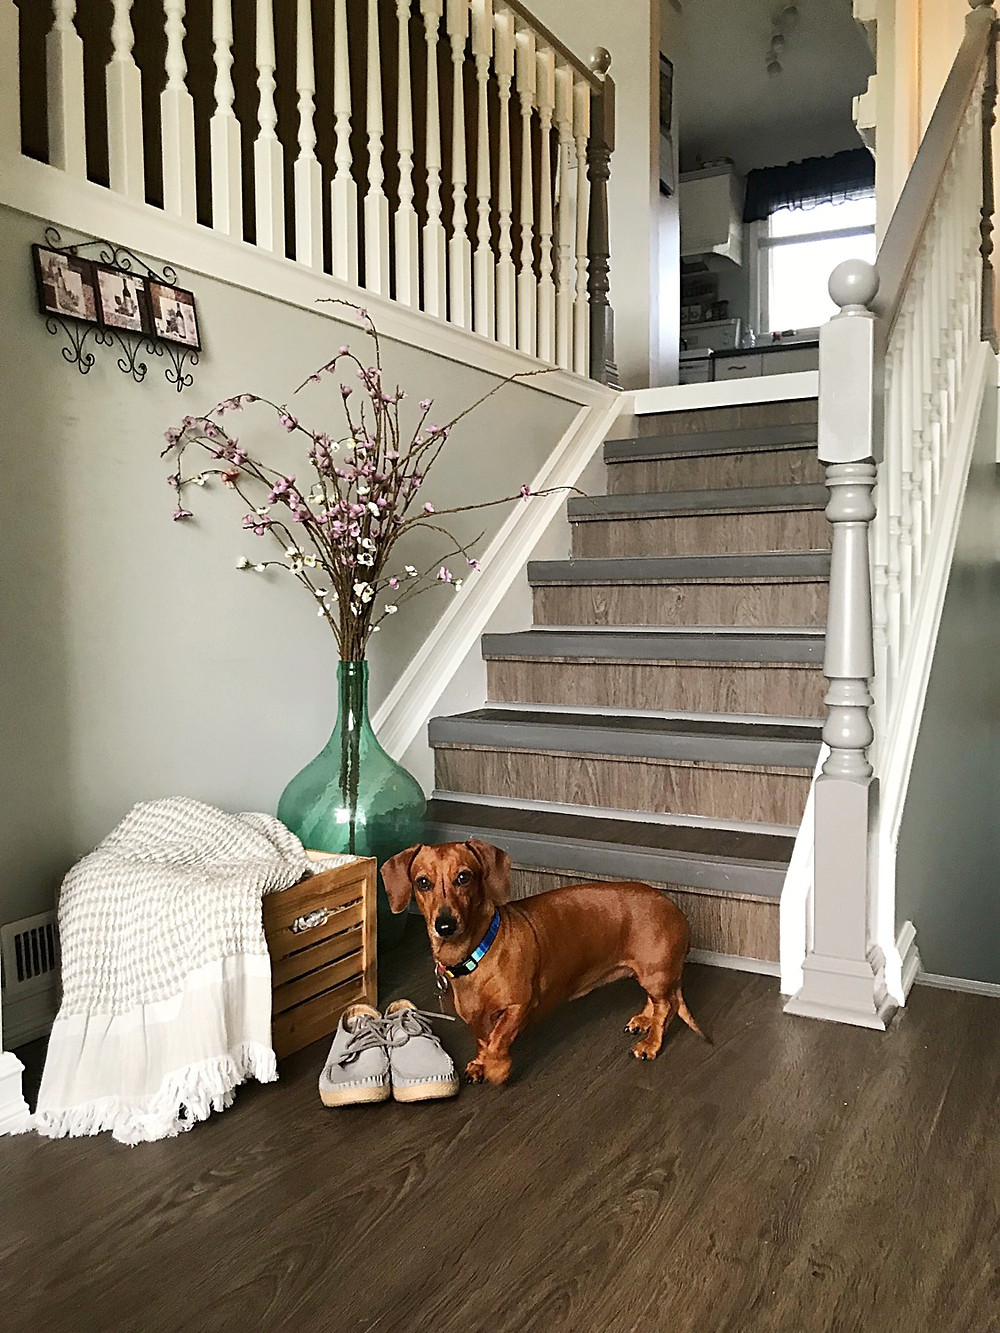 How To Paint Stair Spindles the Easy Way   After DIY Foyer Project